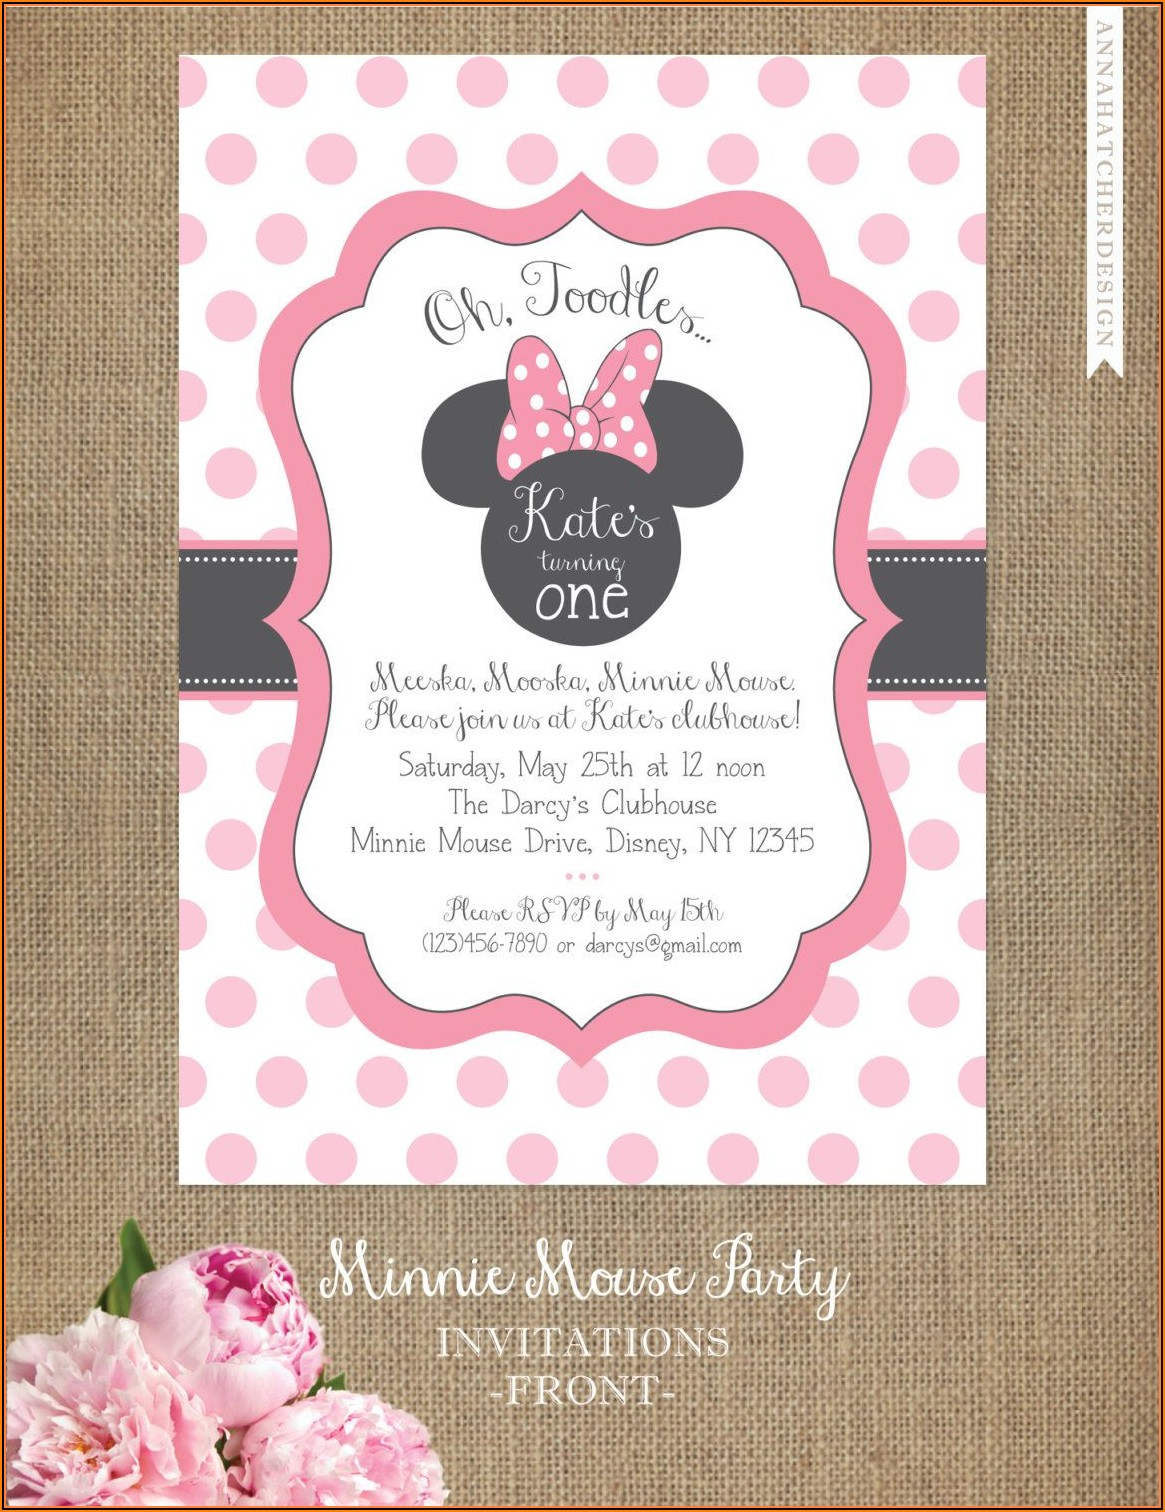 Editable Minnie Mouse Birthday Invitation Template